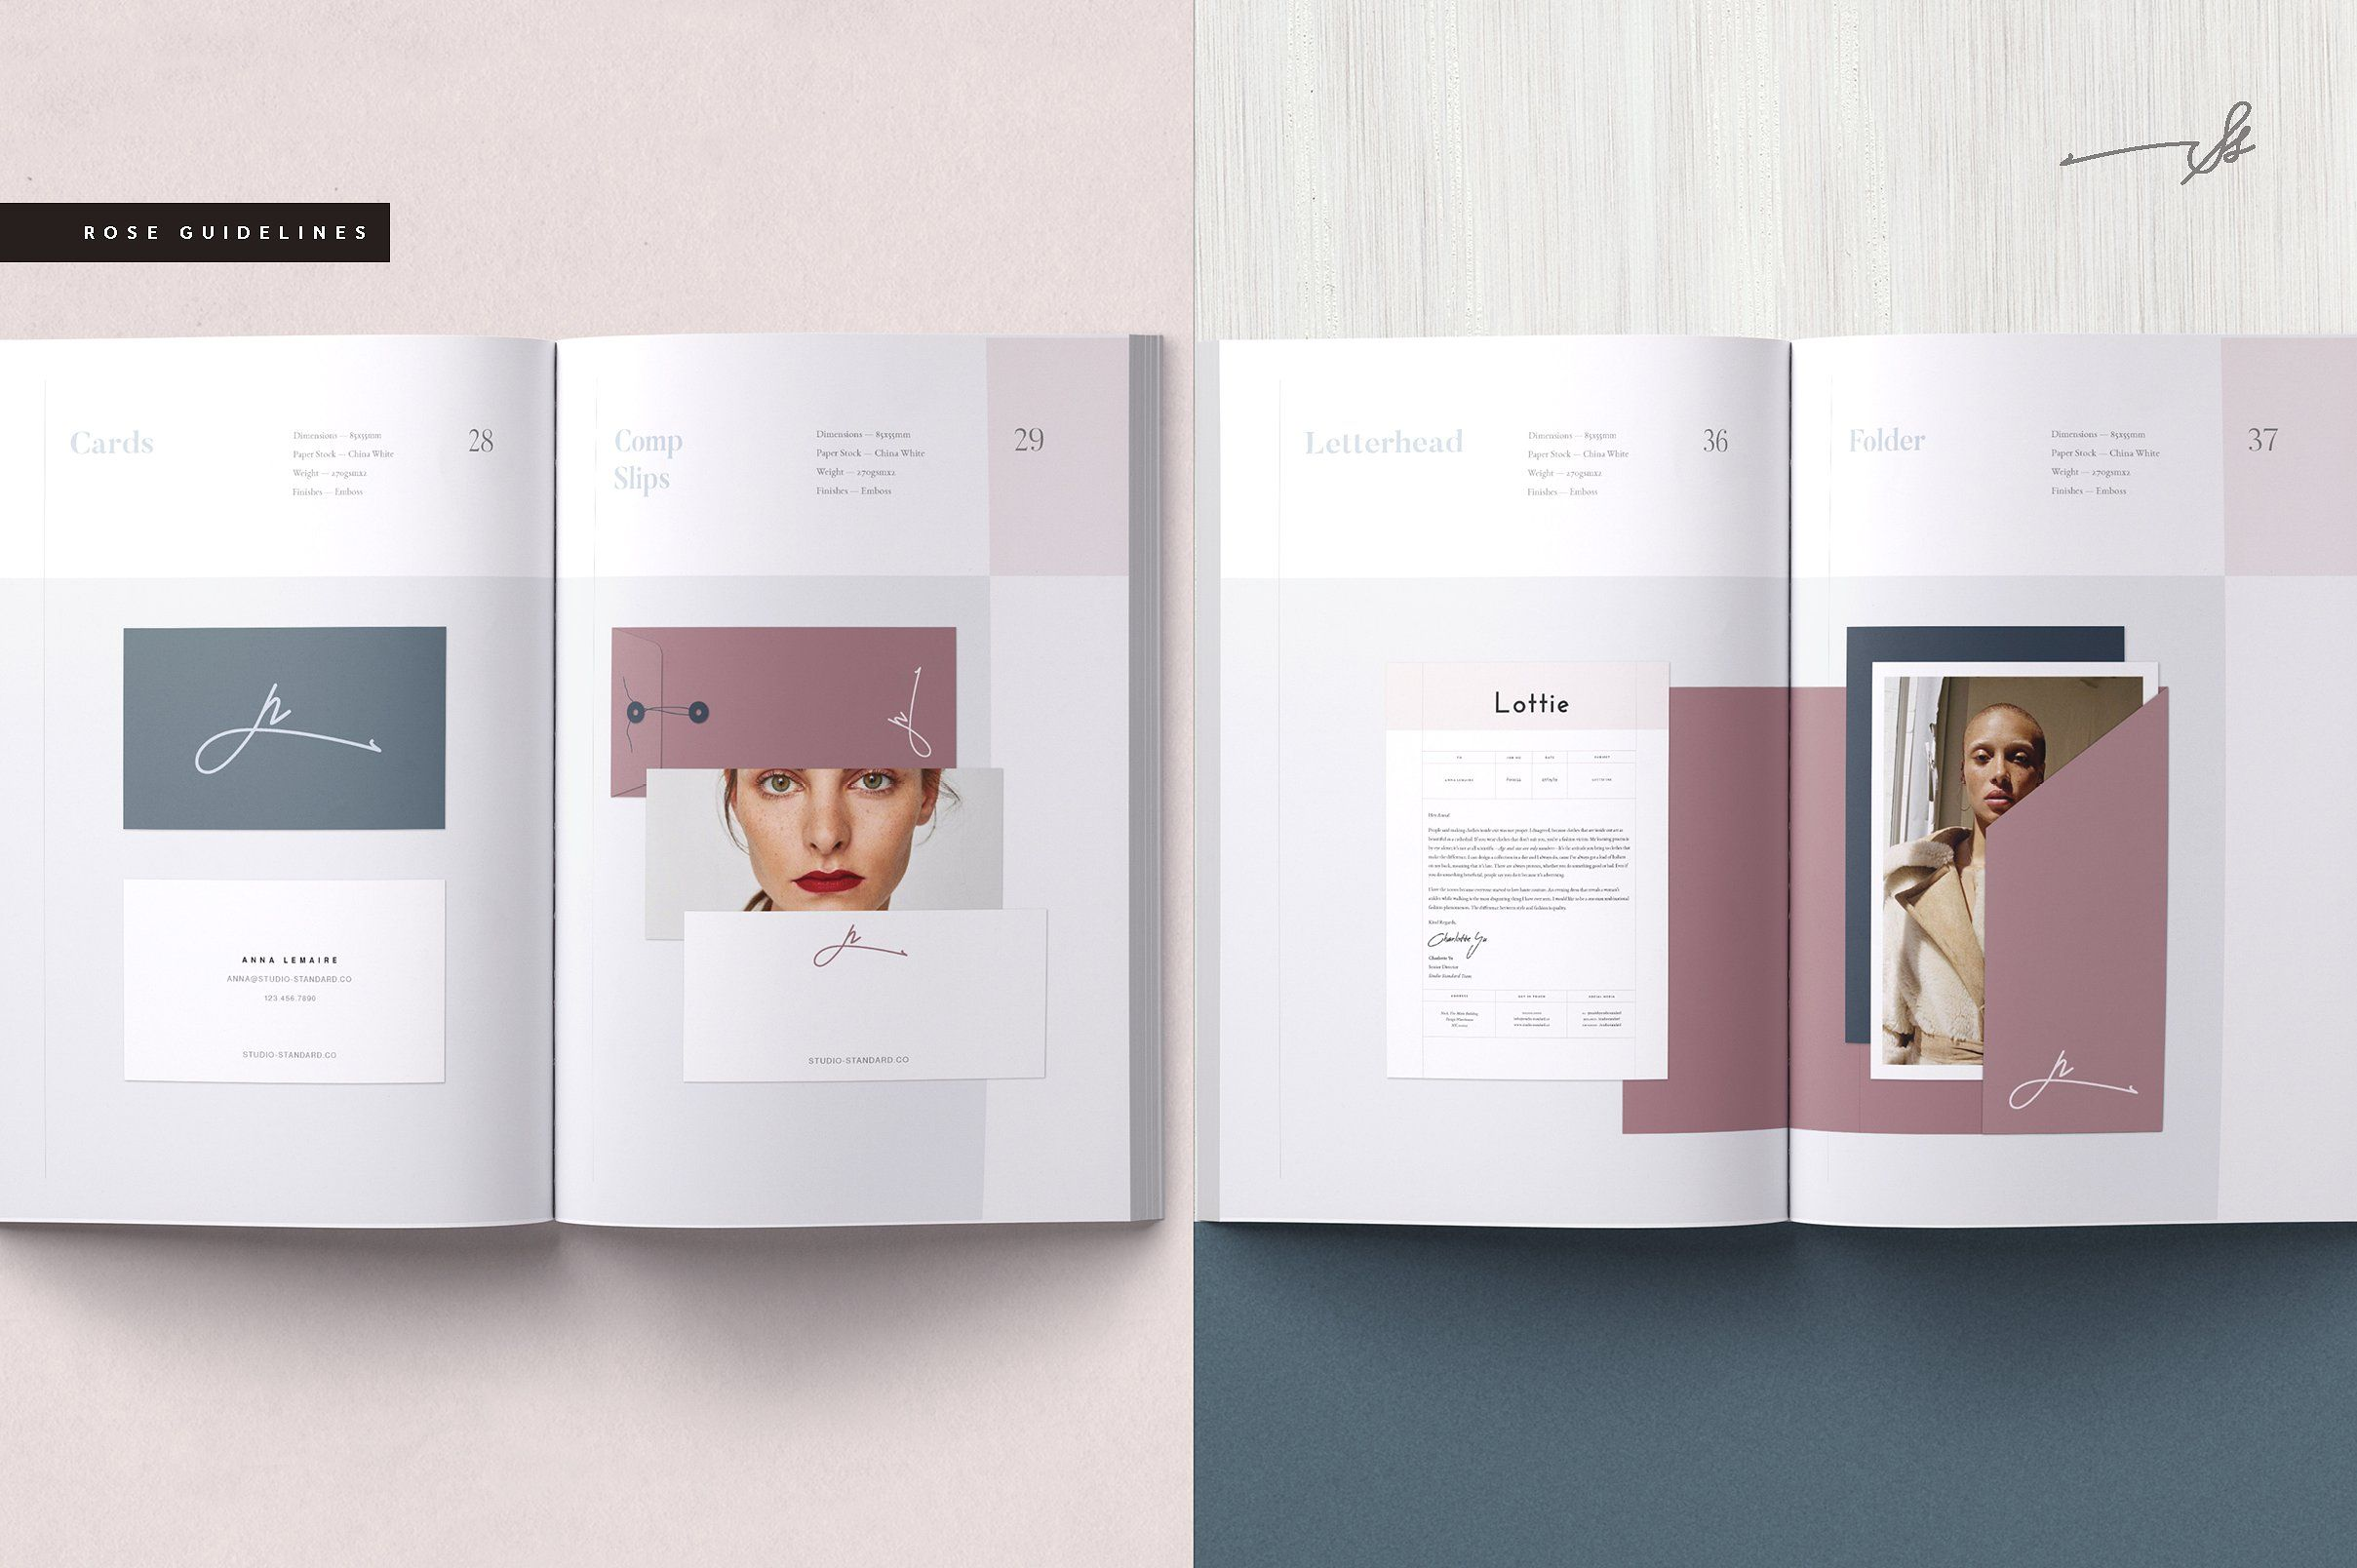 rose  u2014 brand guidelines agencies and design studios will use brand guidelines to show their